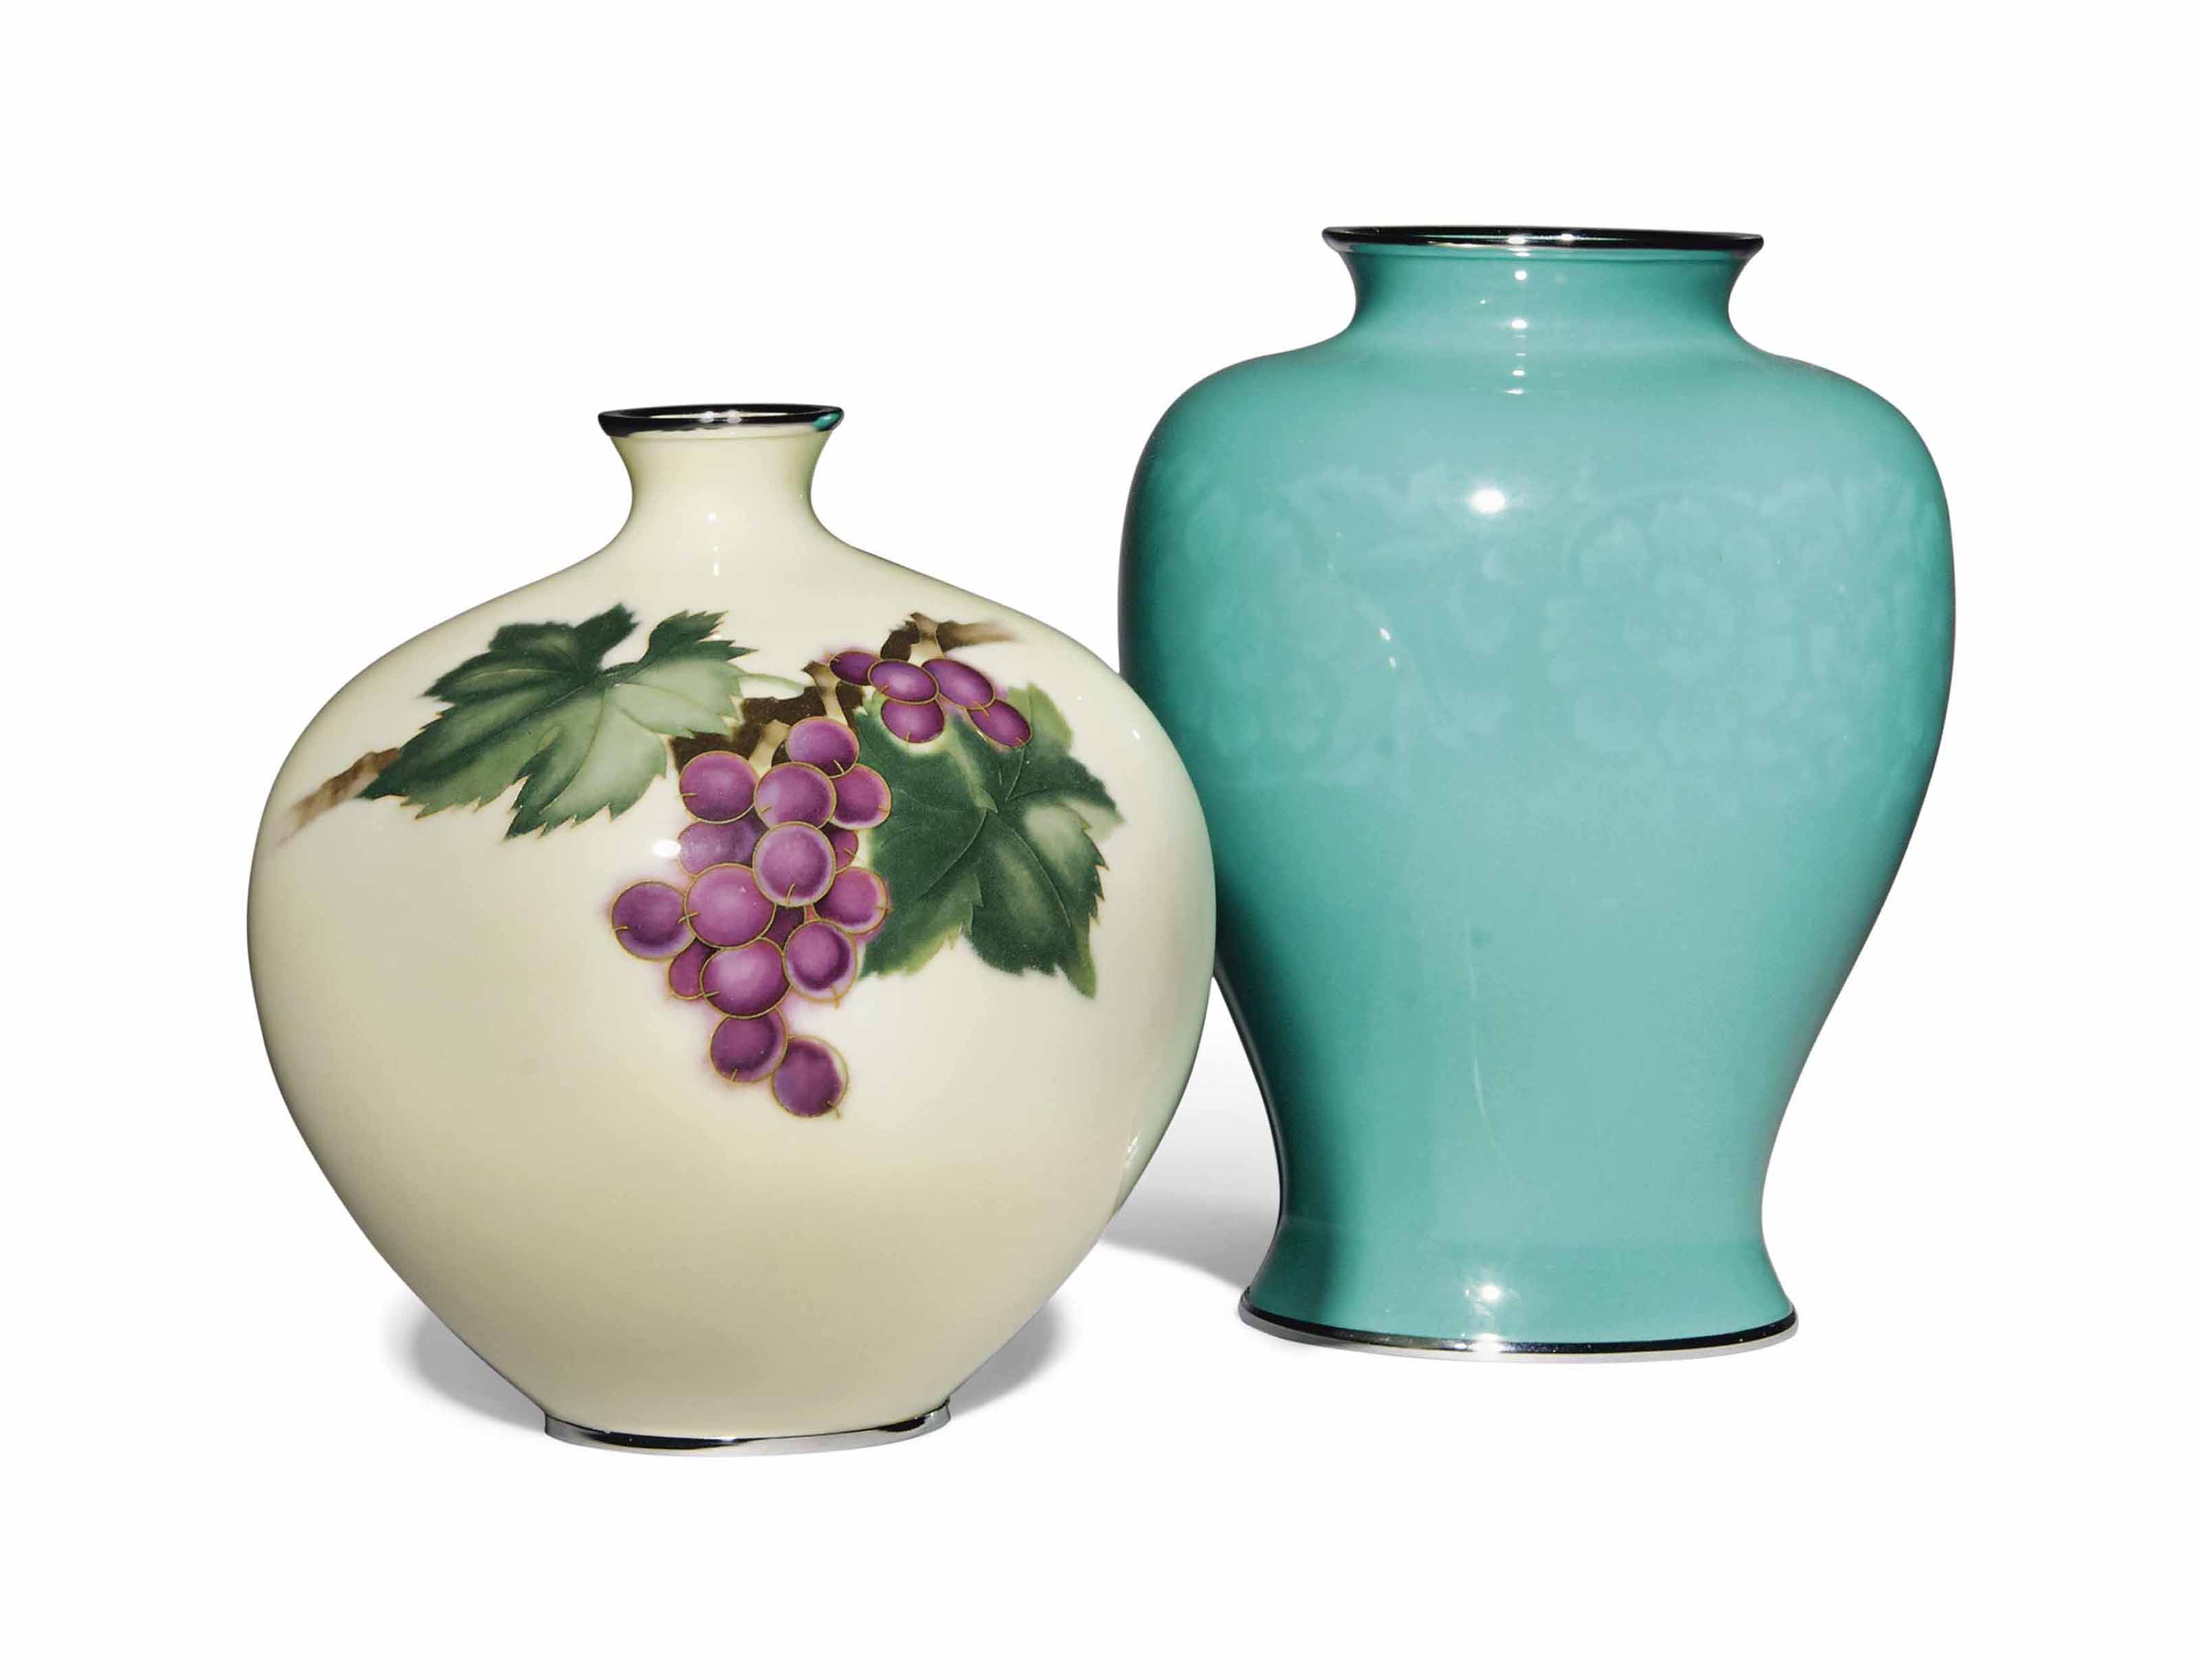 TWO JAPANESE CLOISONNÉ VASES